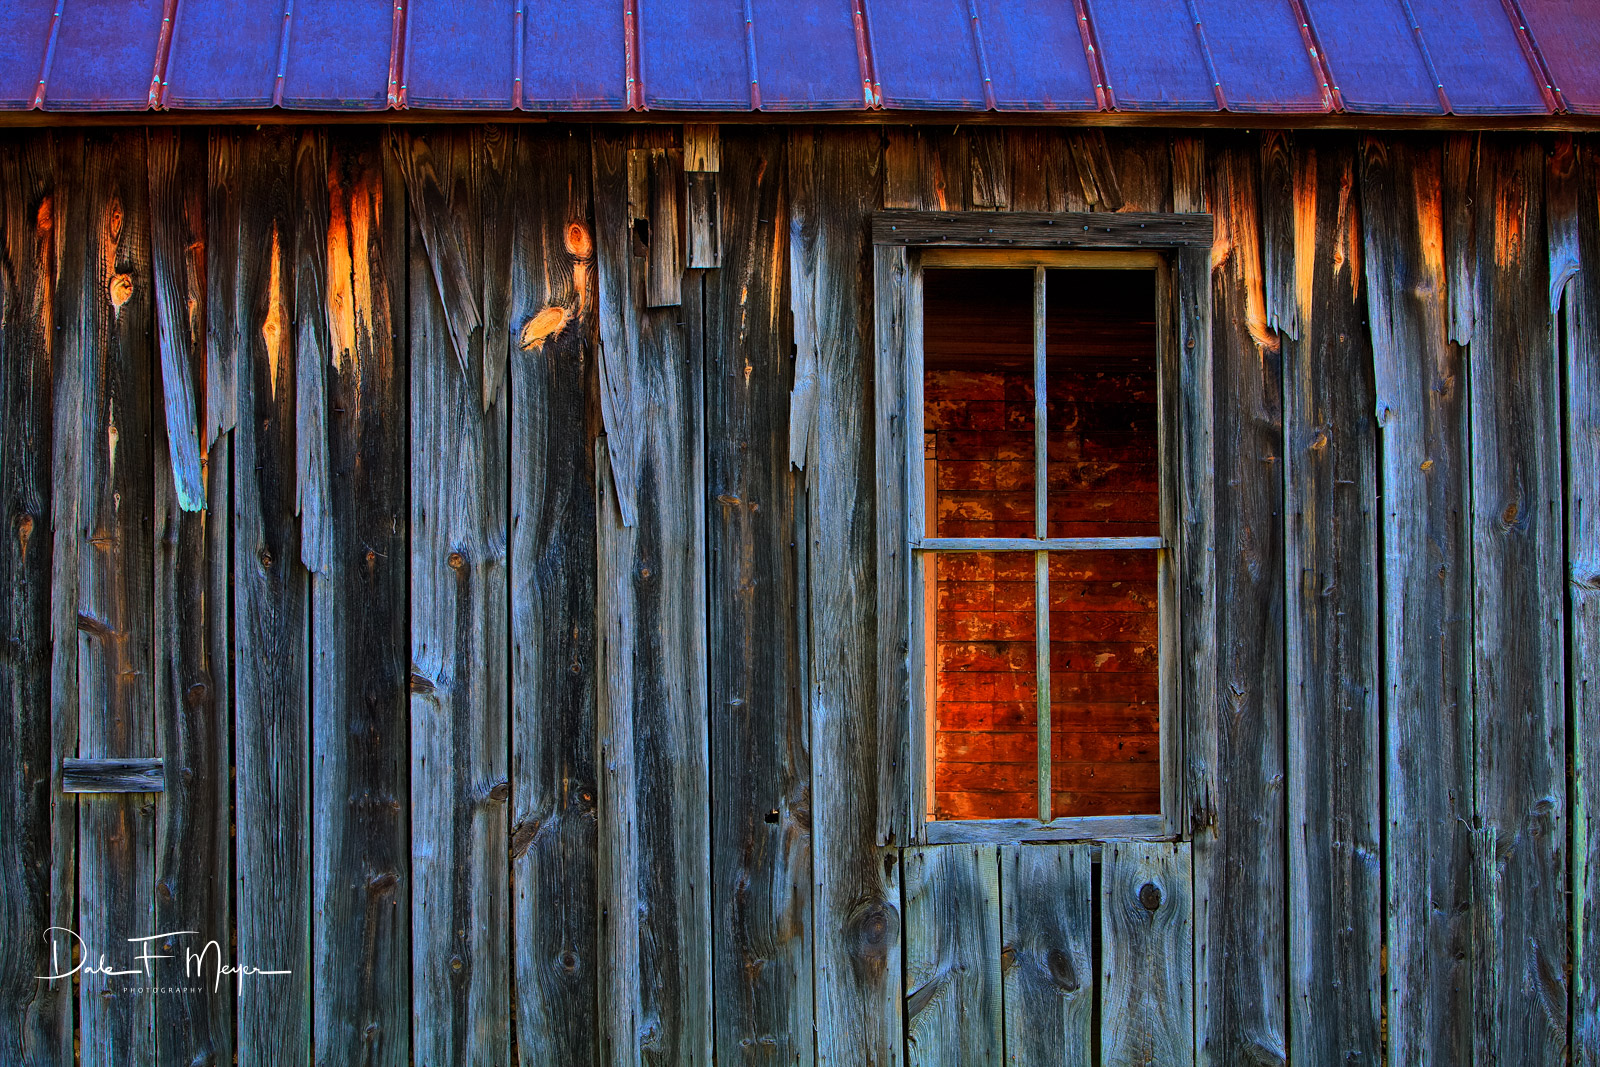 a time gone by gallerie, old house and window, rural Arkansas, photo